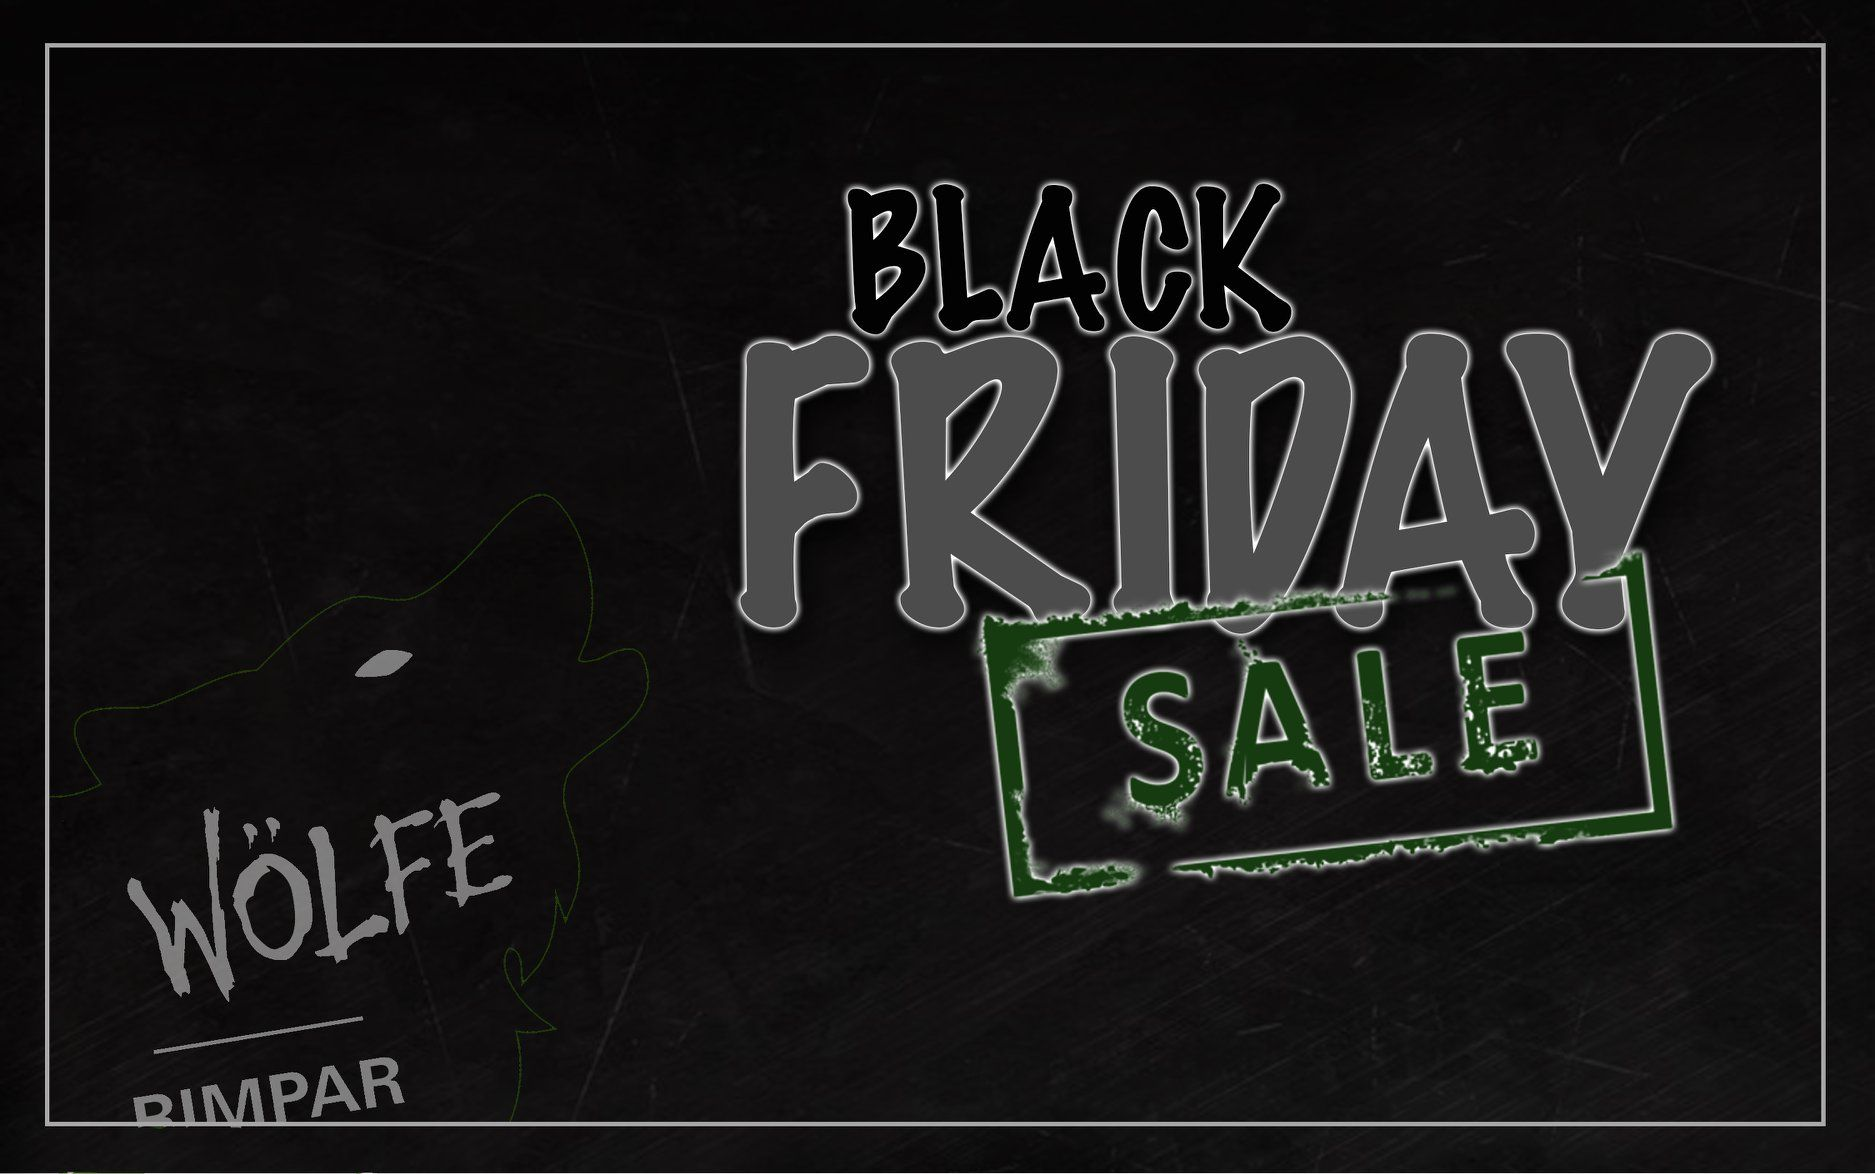 Black Friday Rabatt Black Friday 20 Rabatt Auf Merchandise Rimparer Wölfe